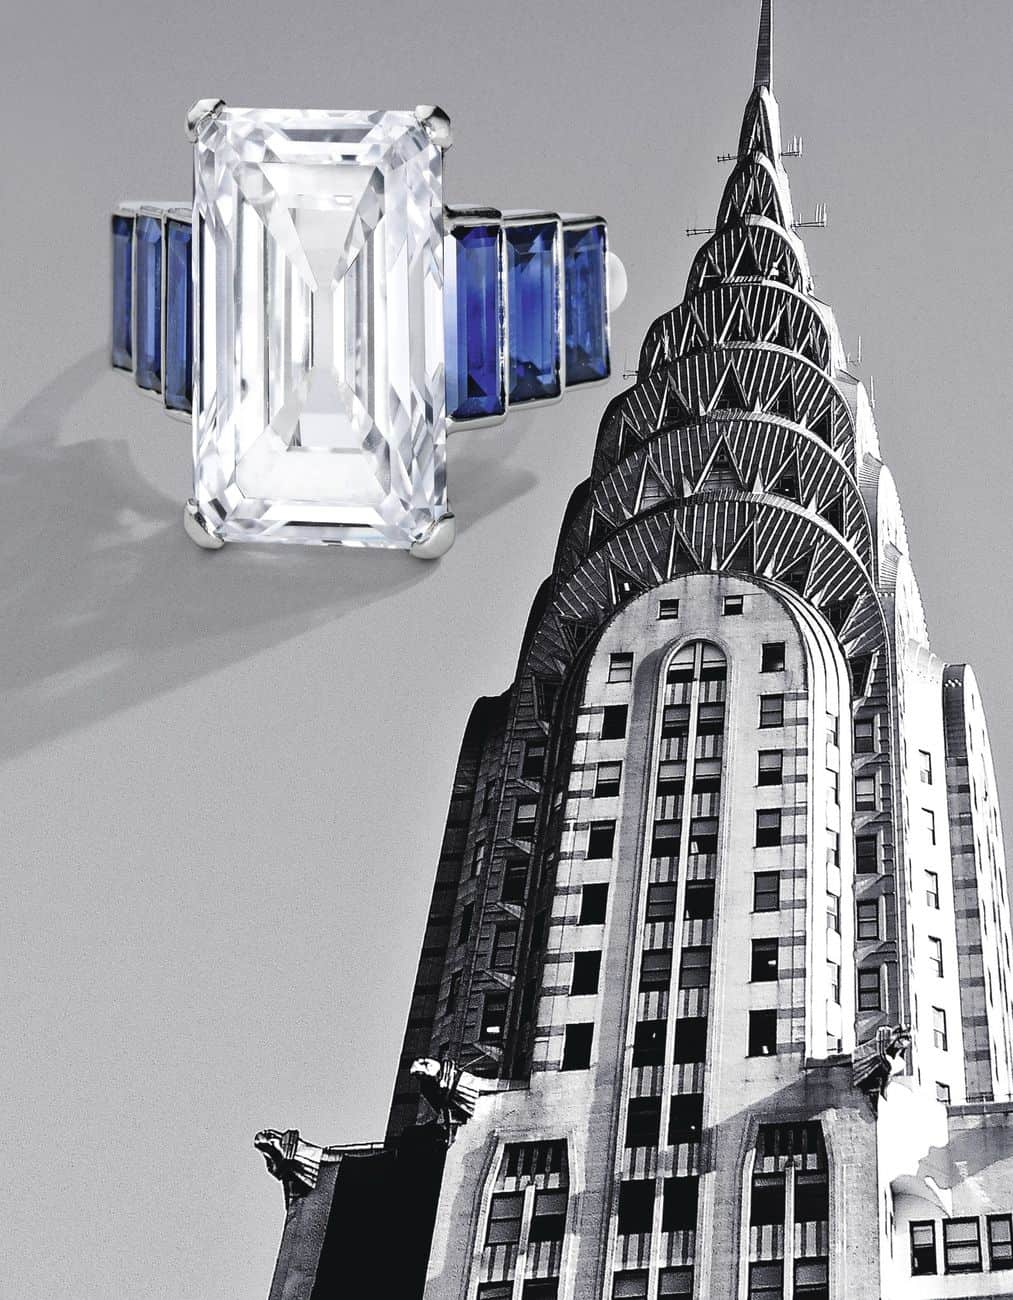 Lot 251 -Art Deco Platinum, Diamond and Sapphire Ring, France, with the ART Deco New York Chrysler Building in the background, both depicting geometric features characteristic of this period